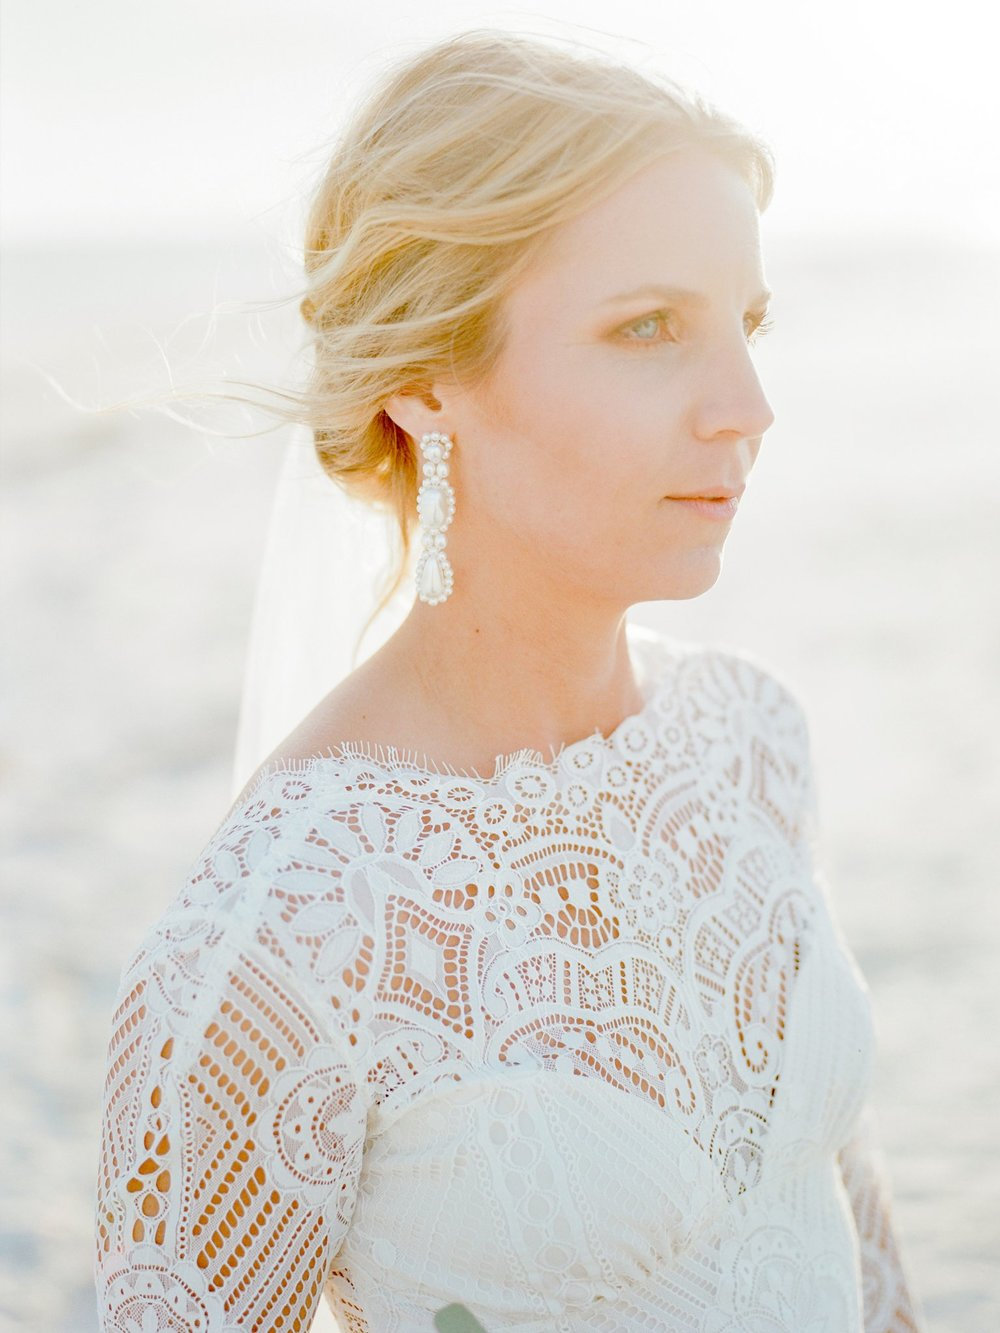 st george island wedding st george island photographer shannon griffin photography_0068.jpg